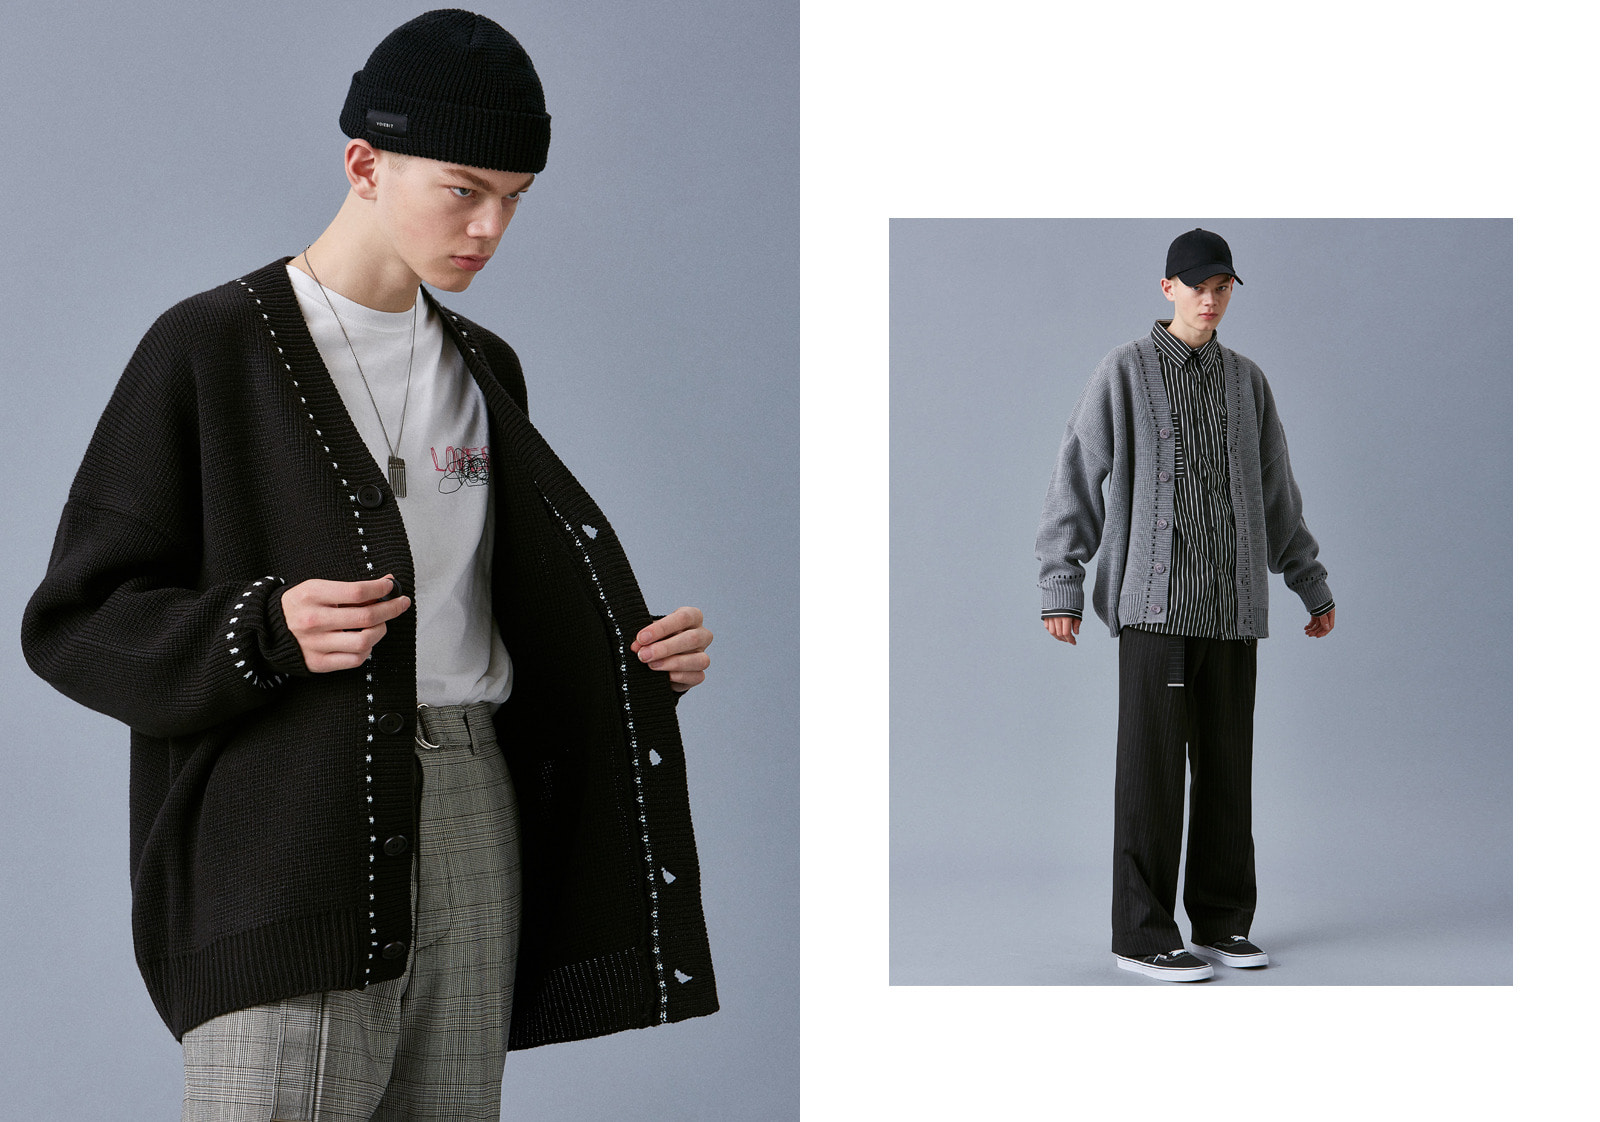 2018 F/W COLLECTION #1 LOOKBOOK